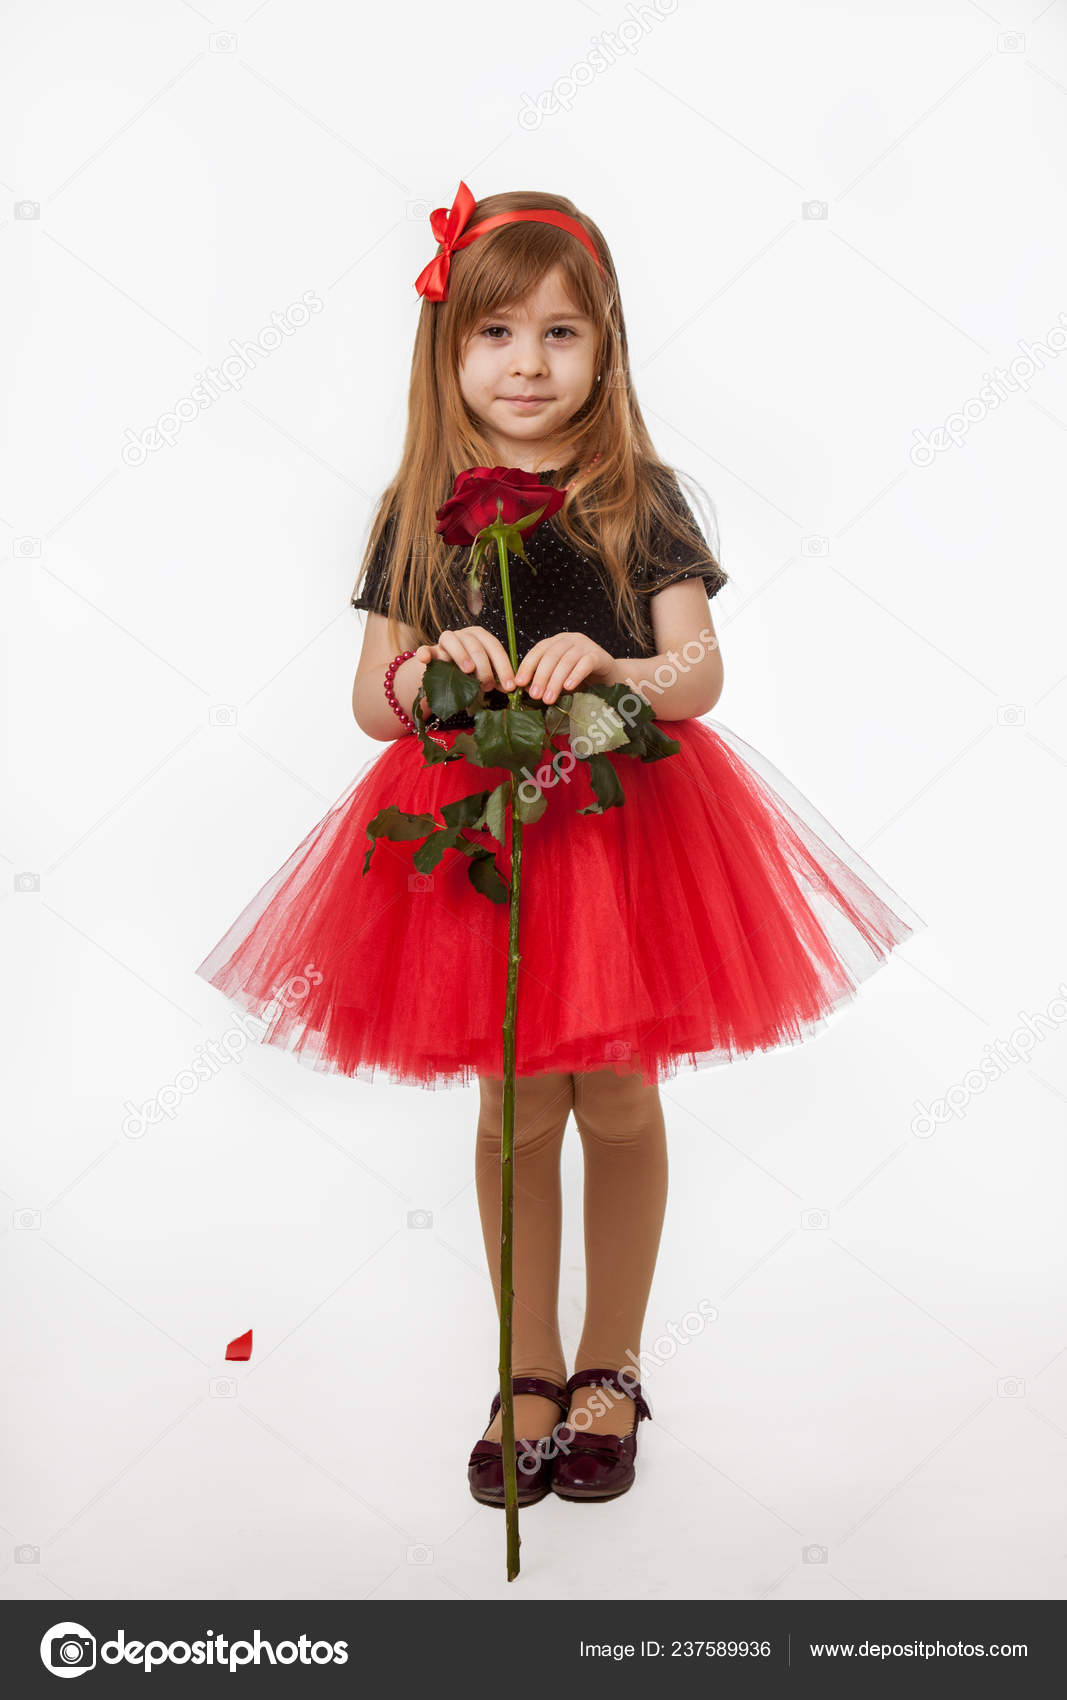 What to get little girl for valentines day